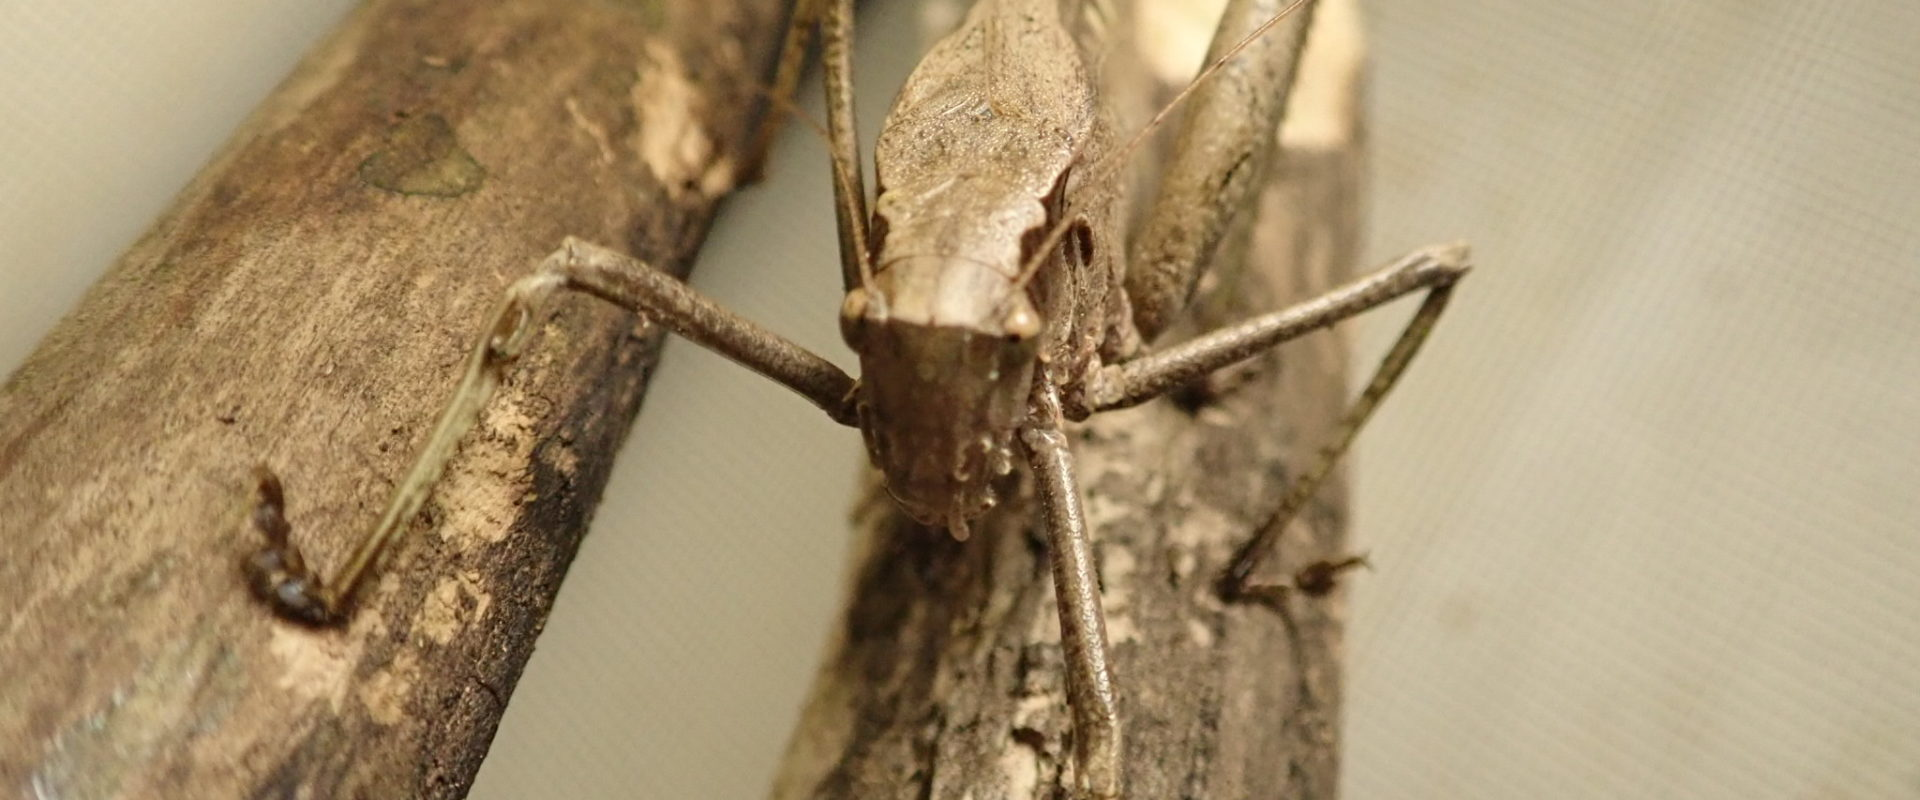 A long-legged katydid faces the camera